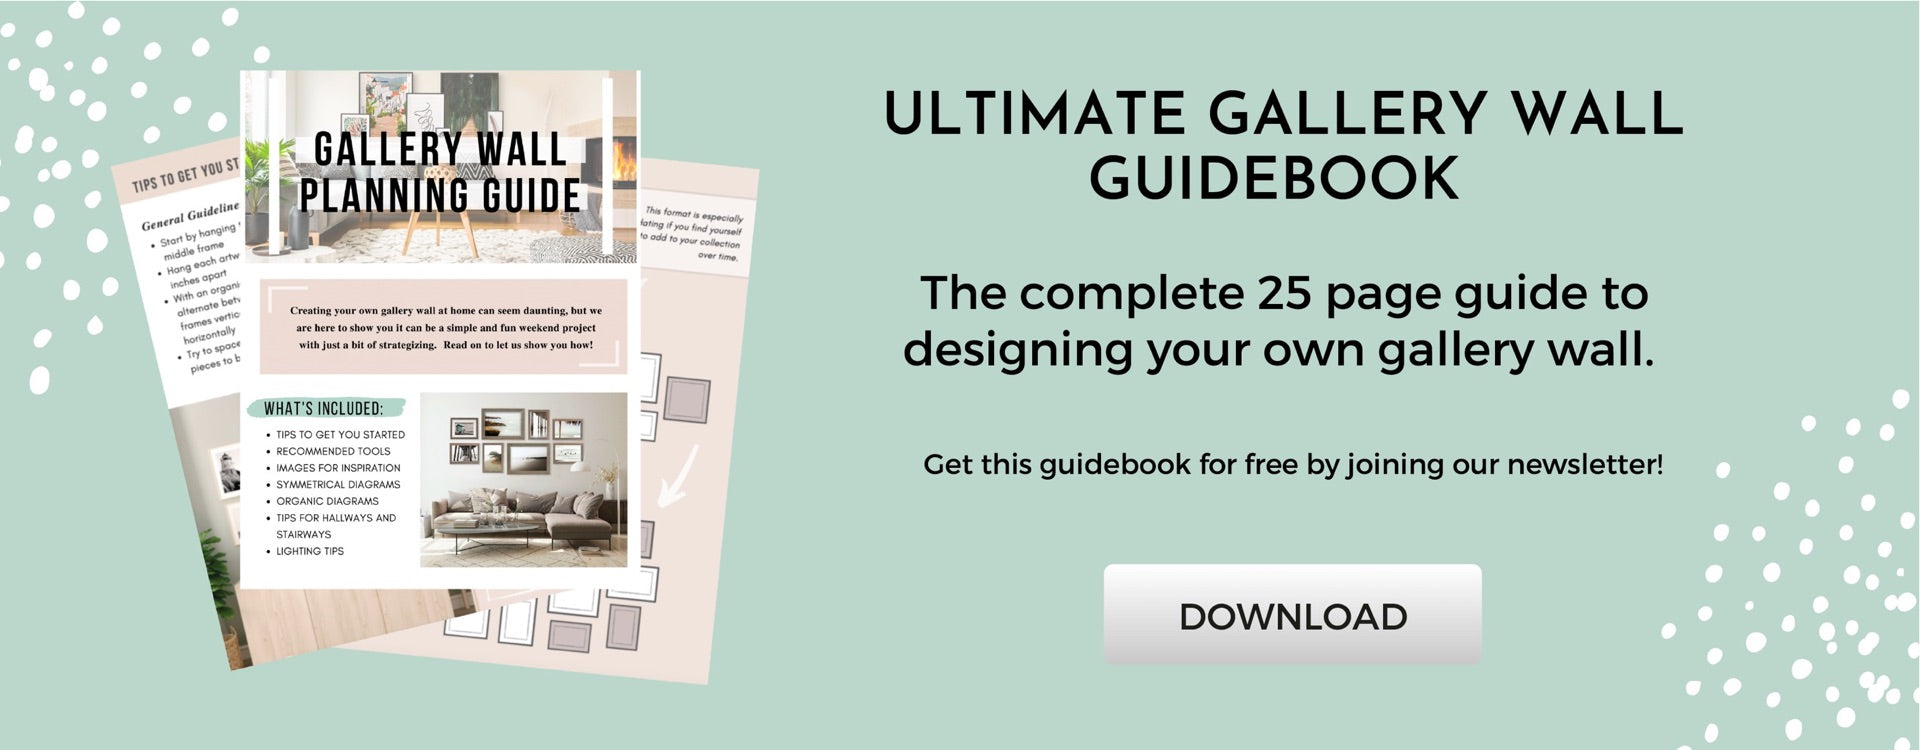 Download Gallery Wall Planning Guide